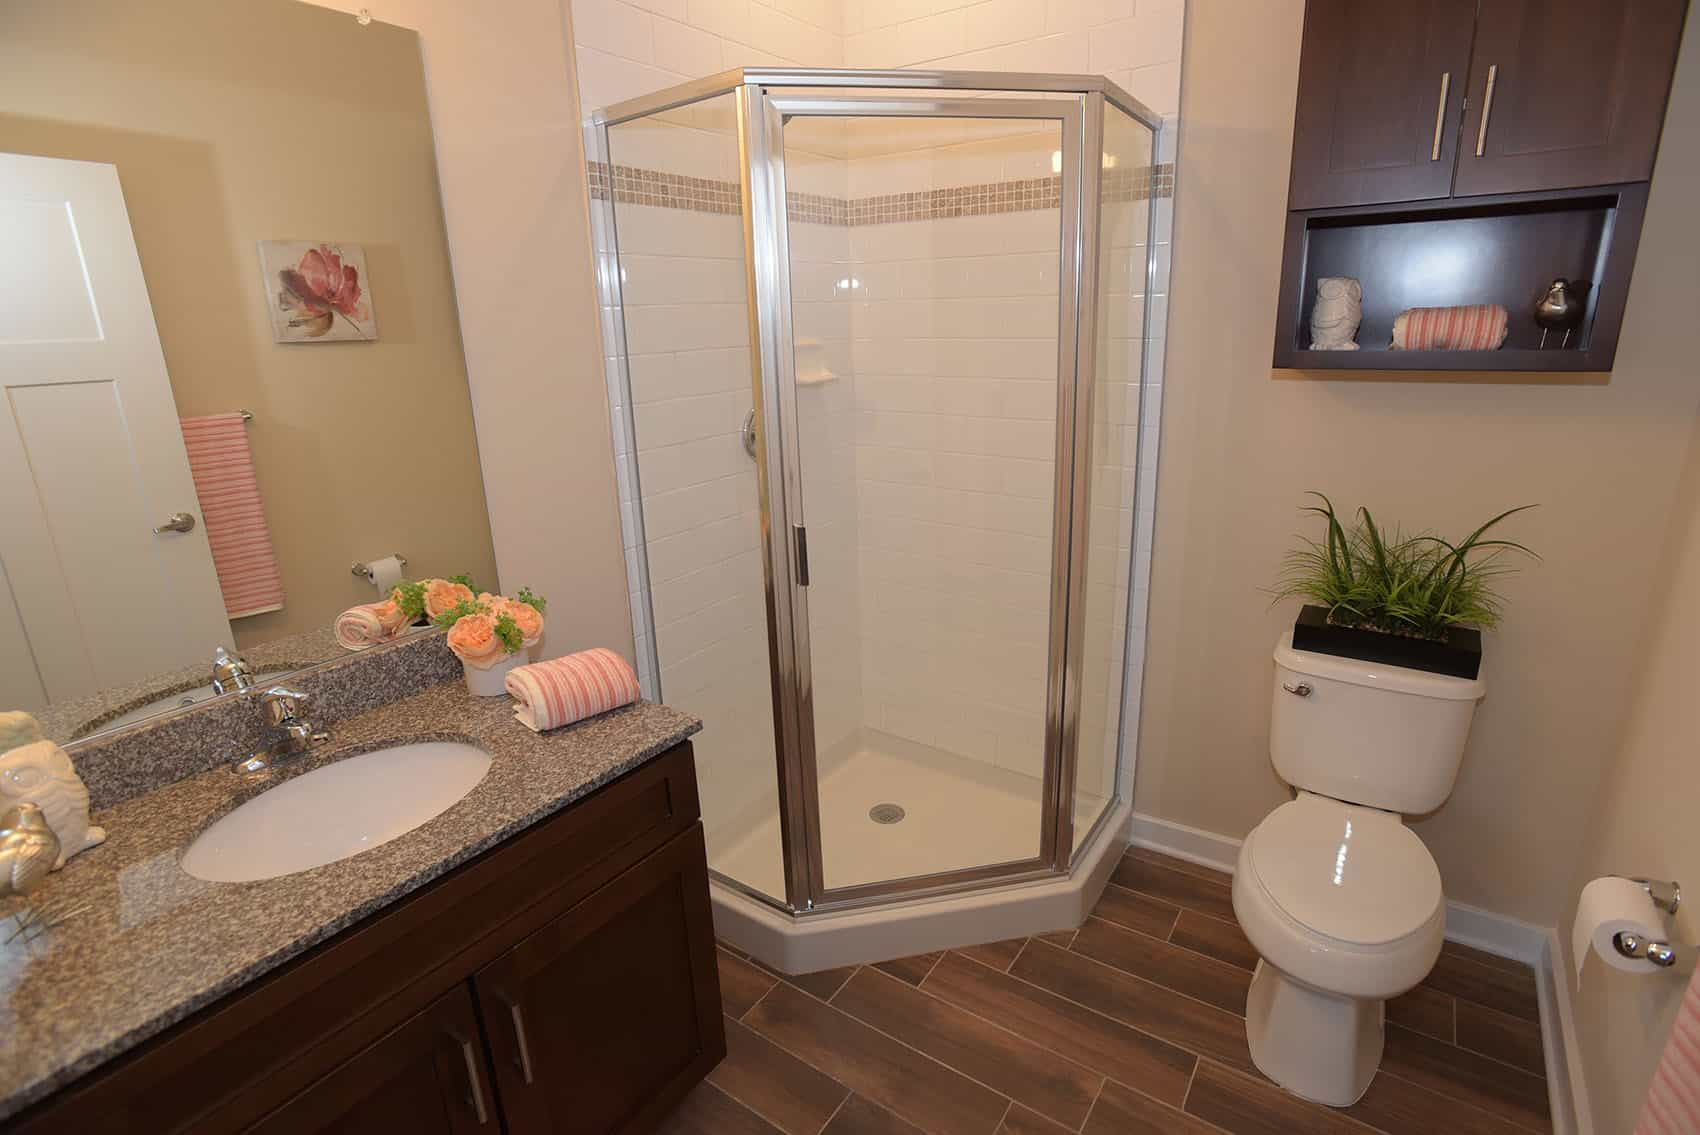 Bathroom with tile flooring and glass enclosed stand up shower with a brown wooden vanity